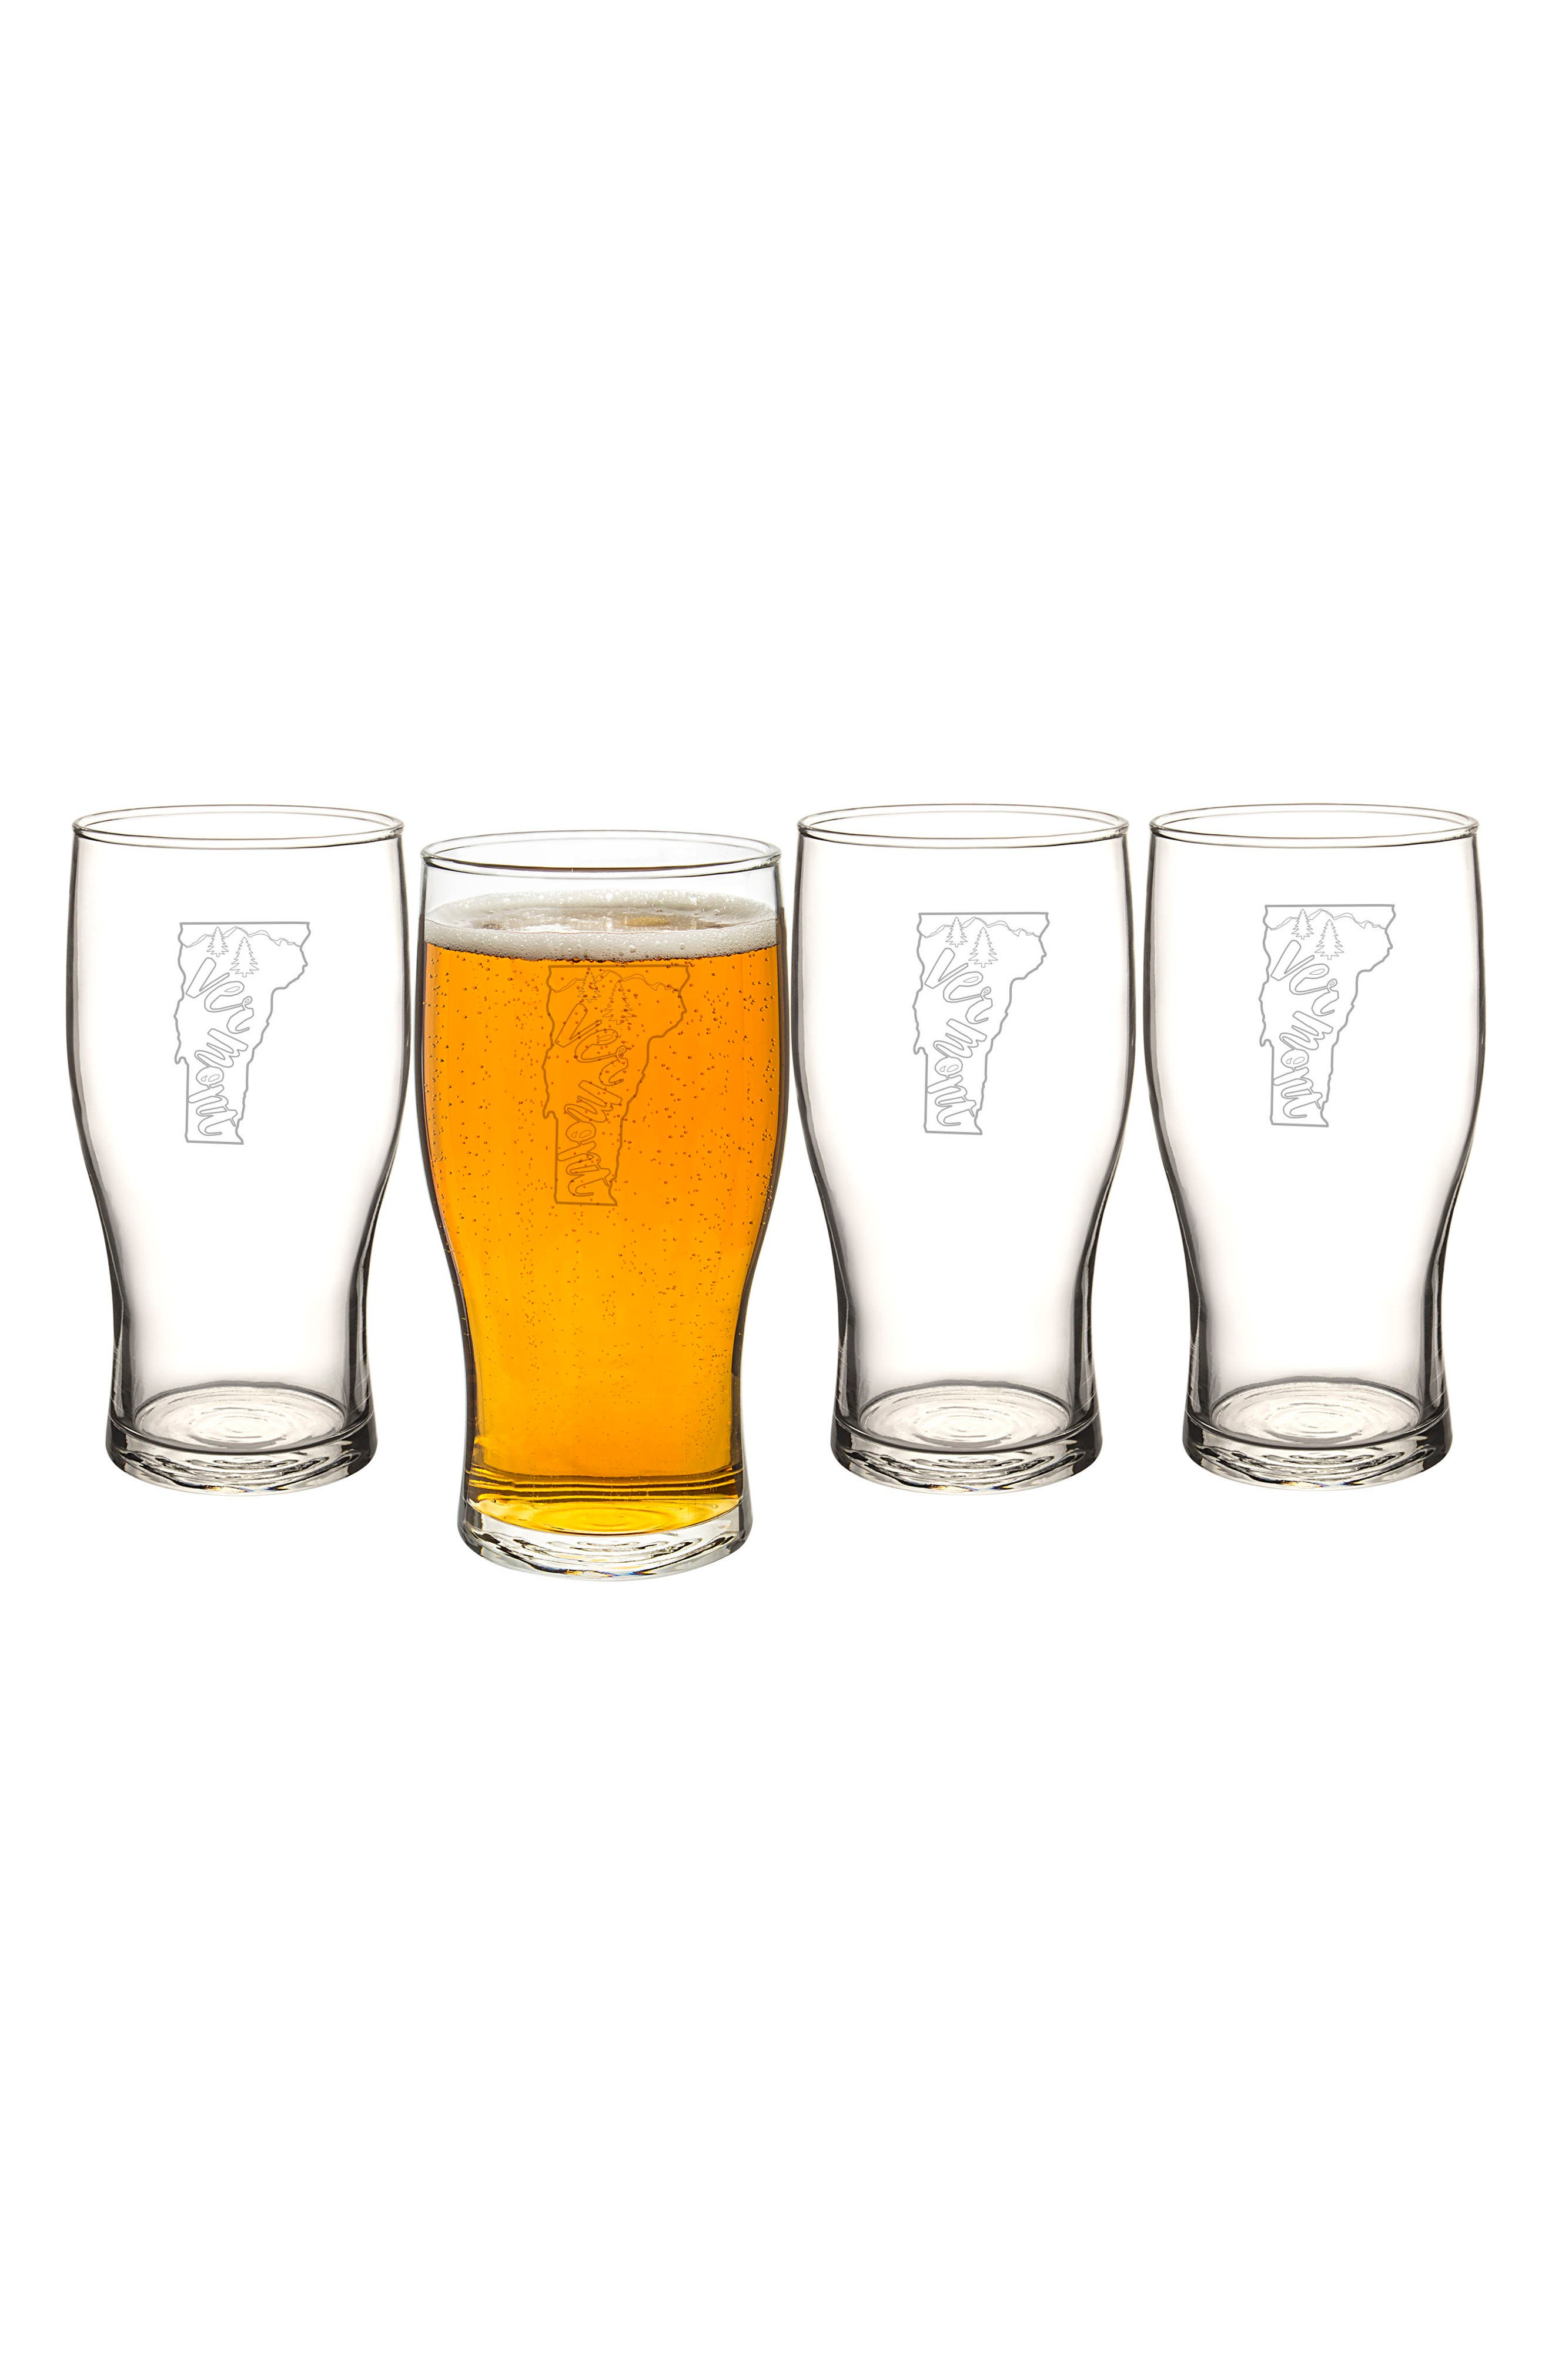 Alternate Image 1 Selected - Cathy's Concepts State Set of 4 Pilsner Glasses